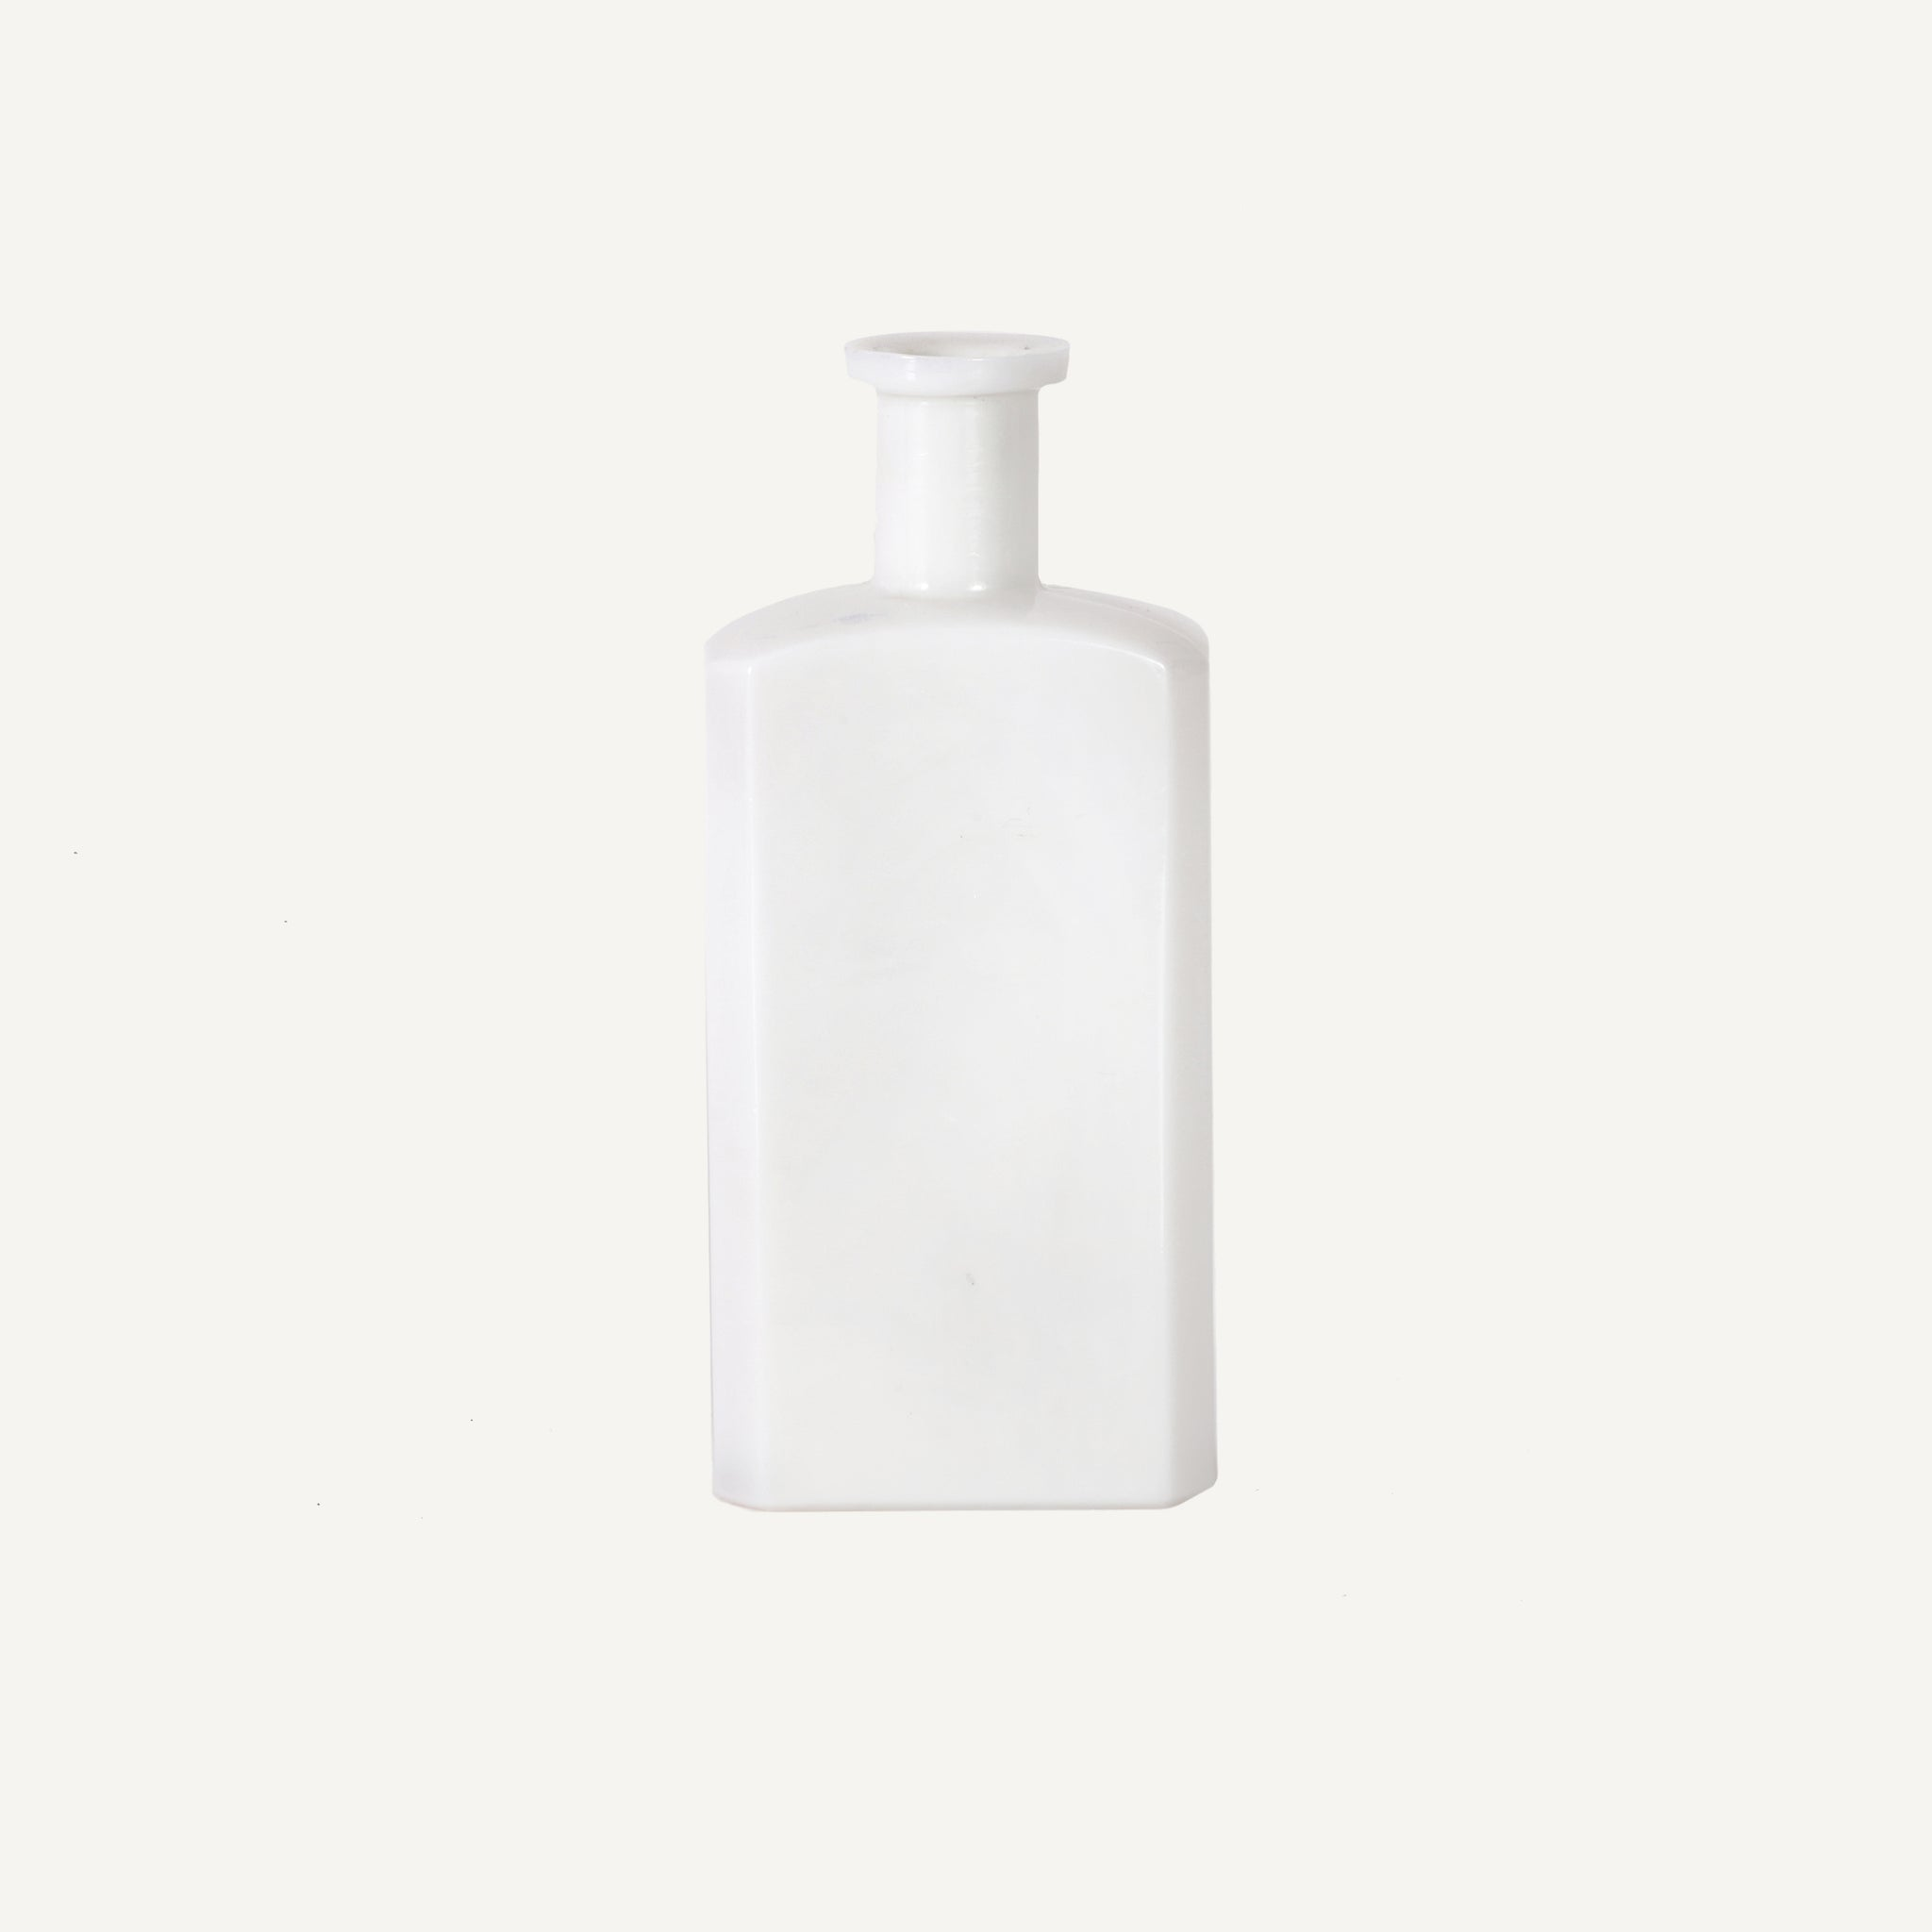 ANTIQUE MILK GLASS BOTTLE